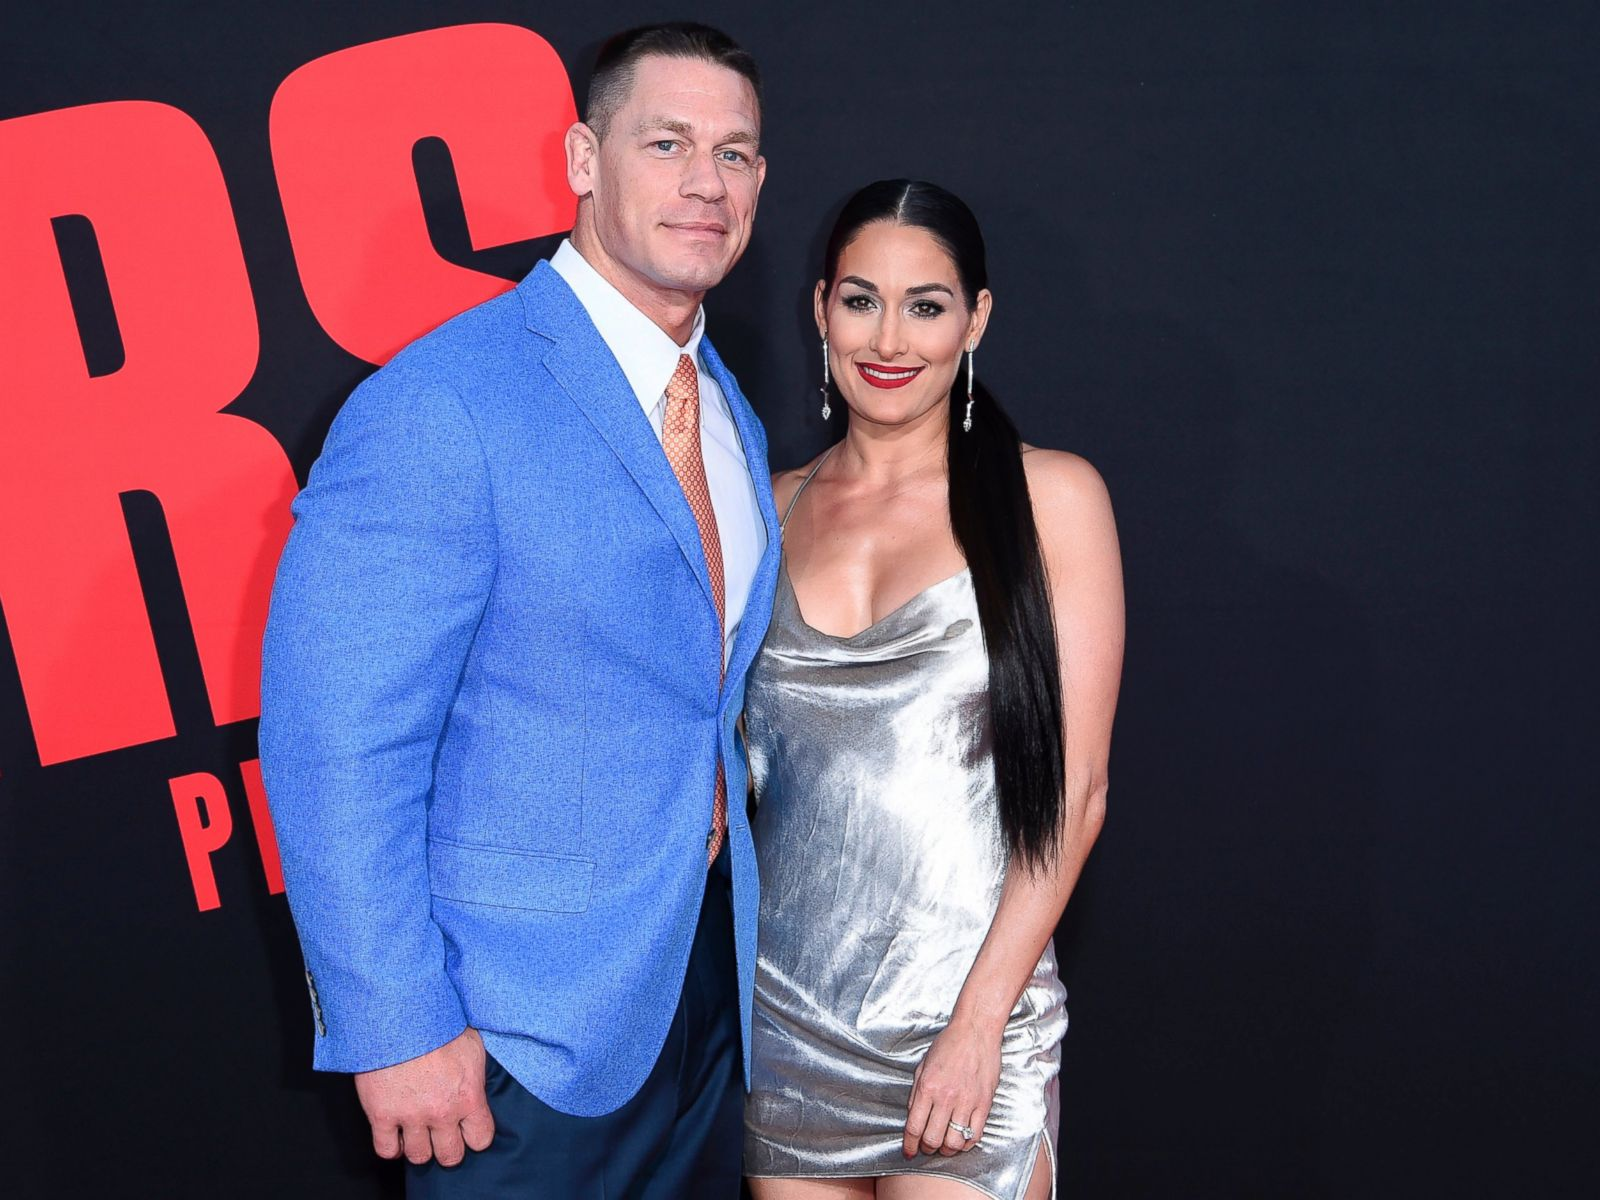 wrestlemania-will-bring-out-tough-emotions-for-john-cena-and-nikki-bella-who-have-both-moved-on